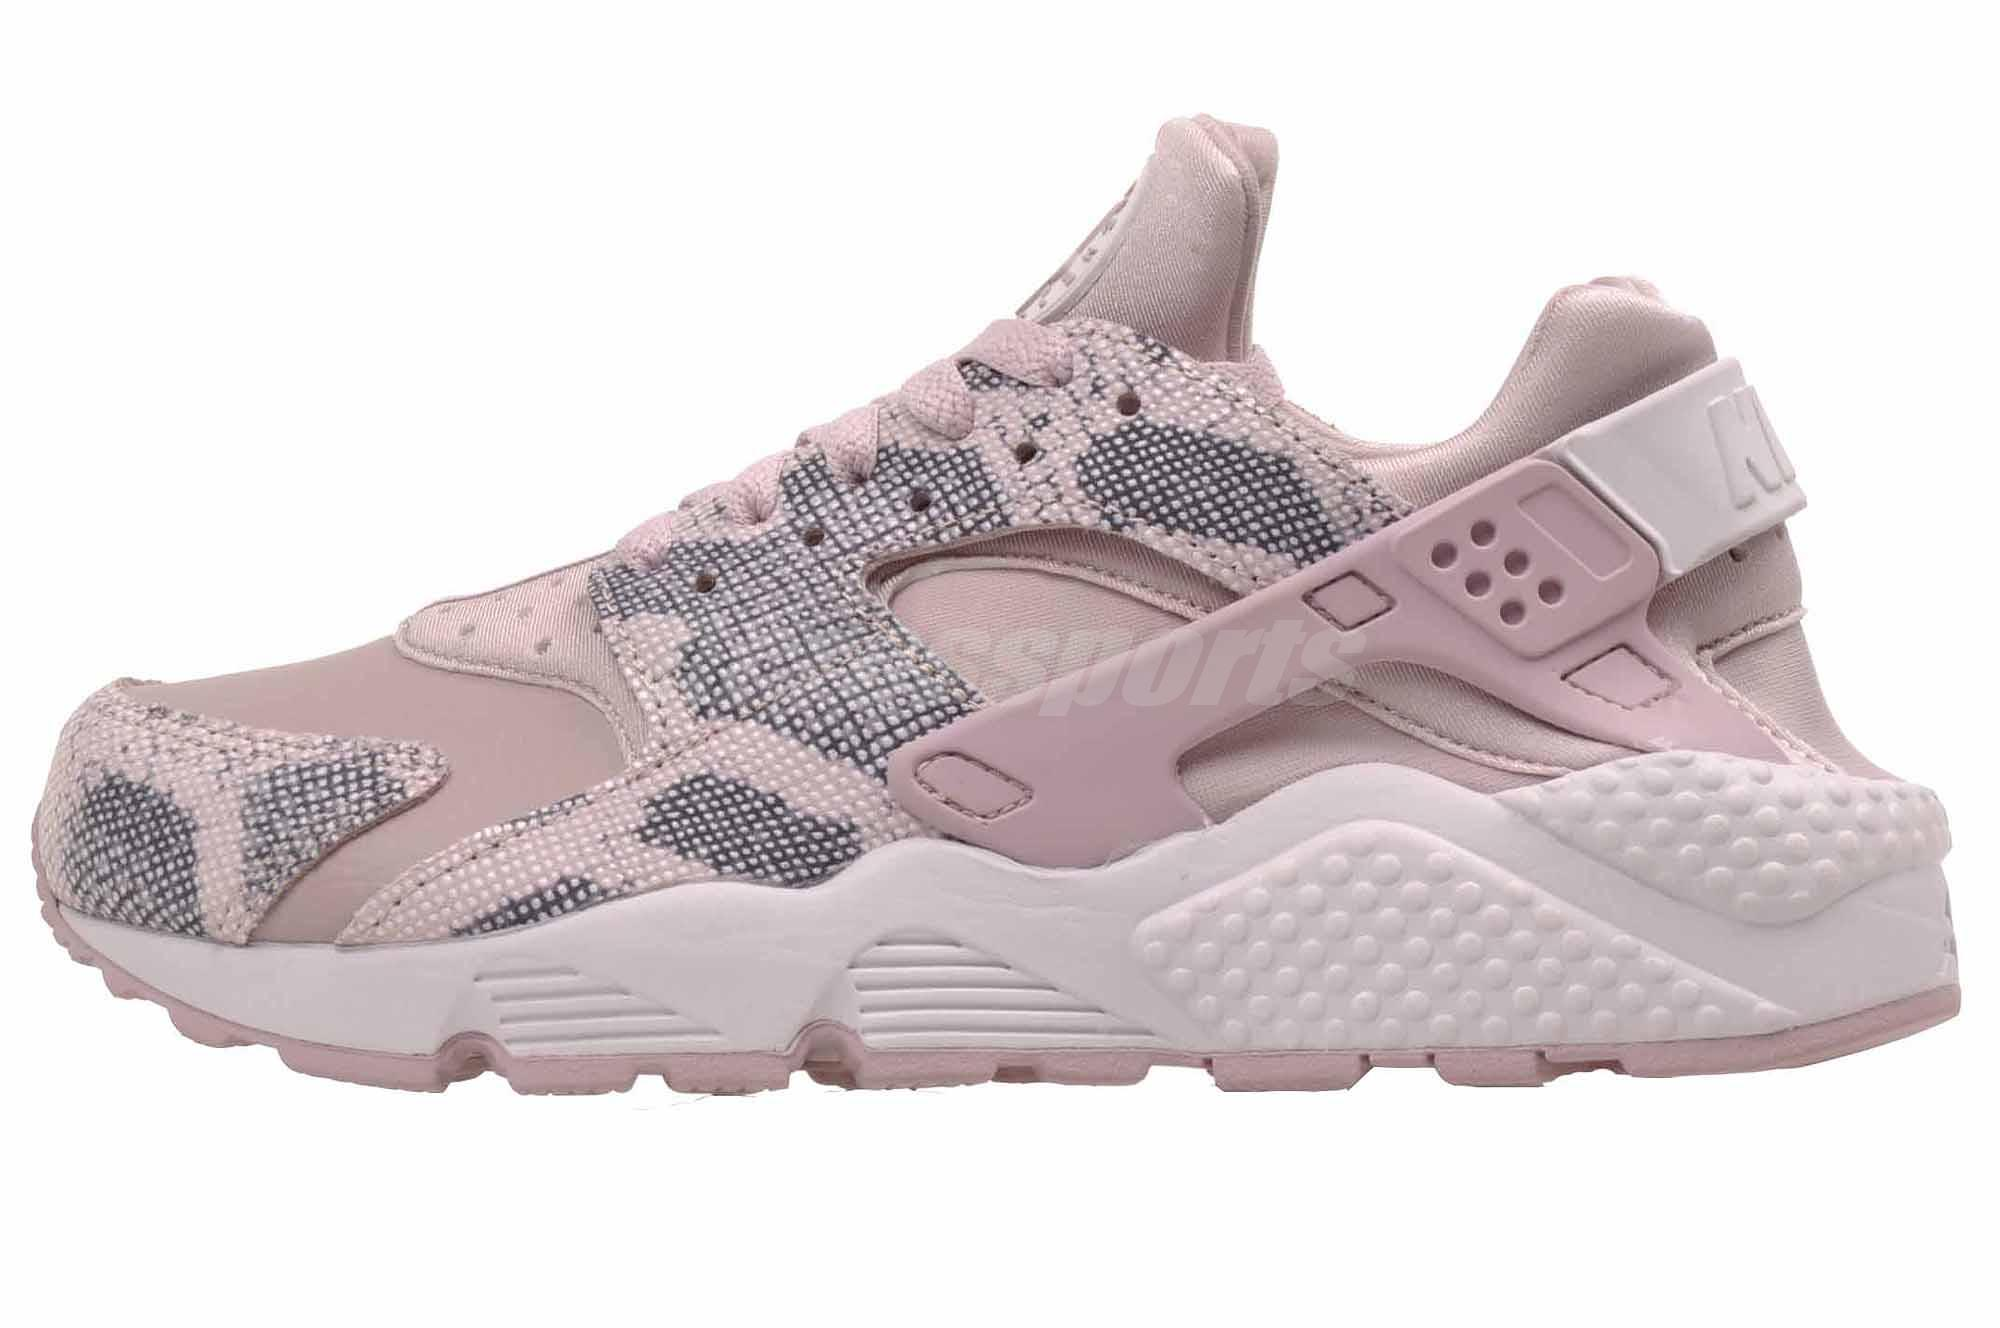 98e5da56afc4 Nike Wmns Air Huarache Run PRM Running Womens Shoes Rose 683818-602 ...